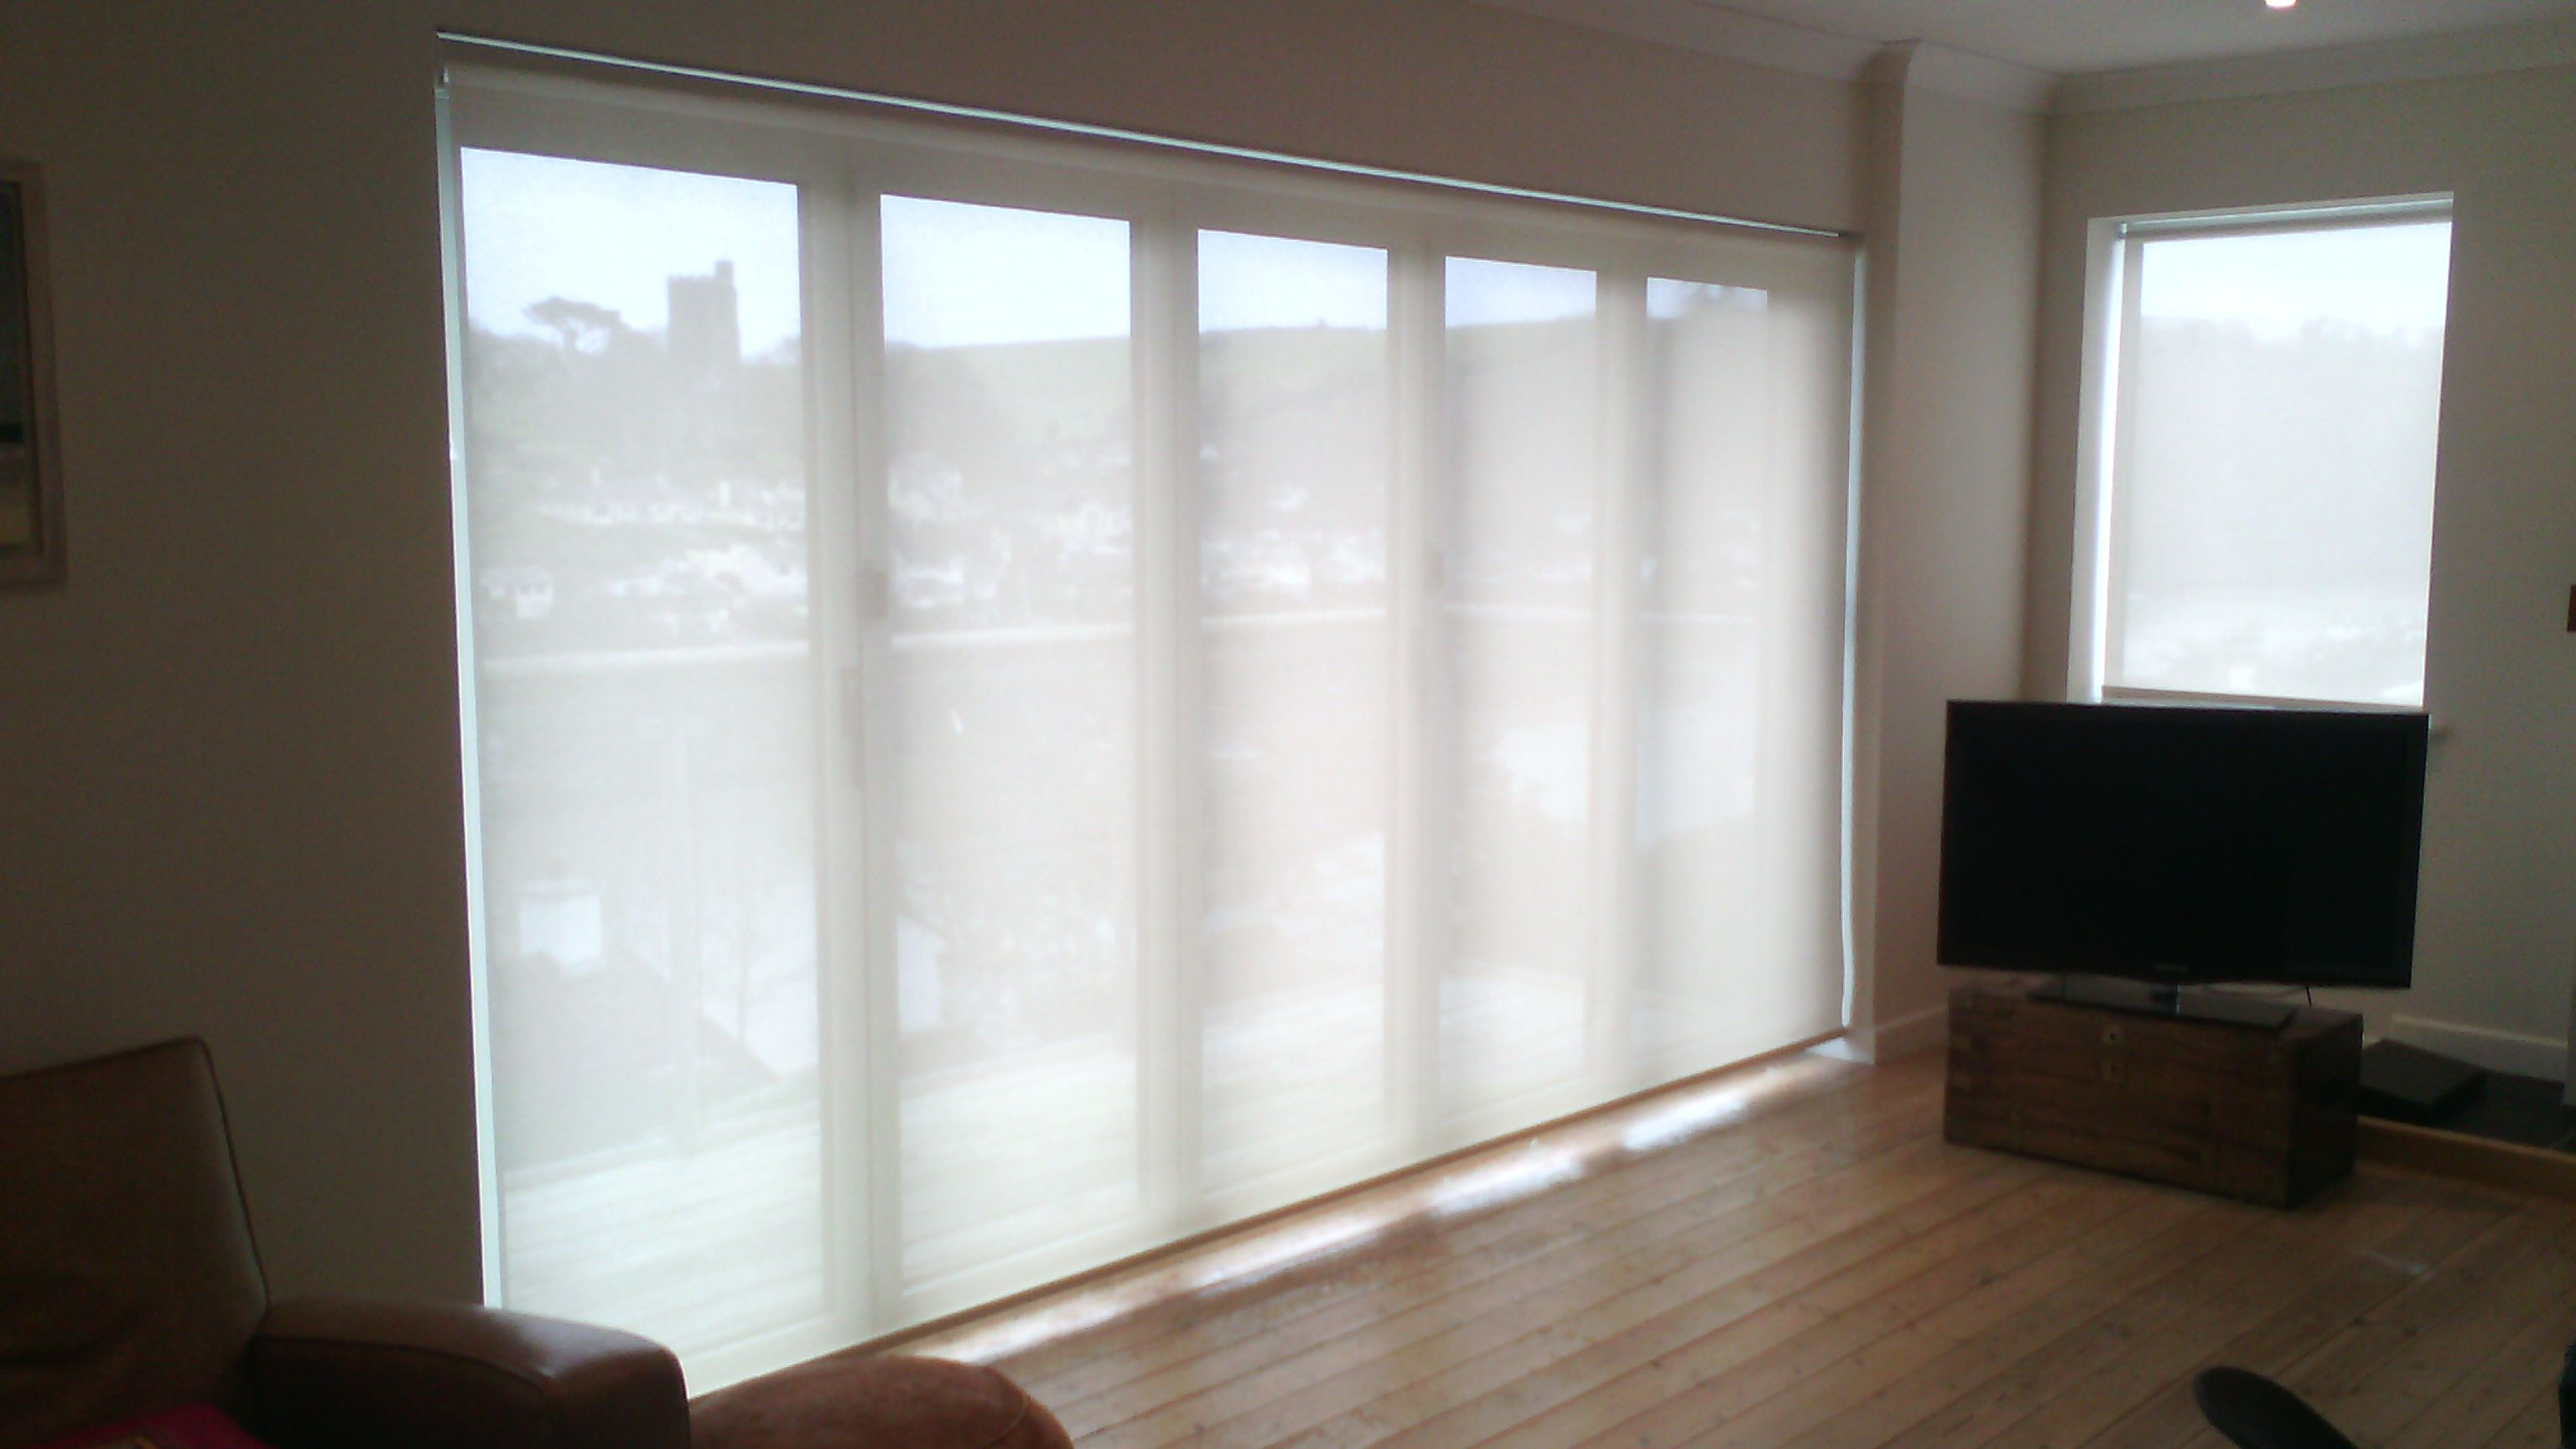 A Luxaflex Xl Roller Blind (36M Wide X 2M Drop